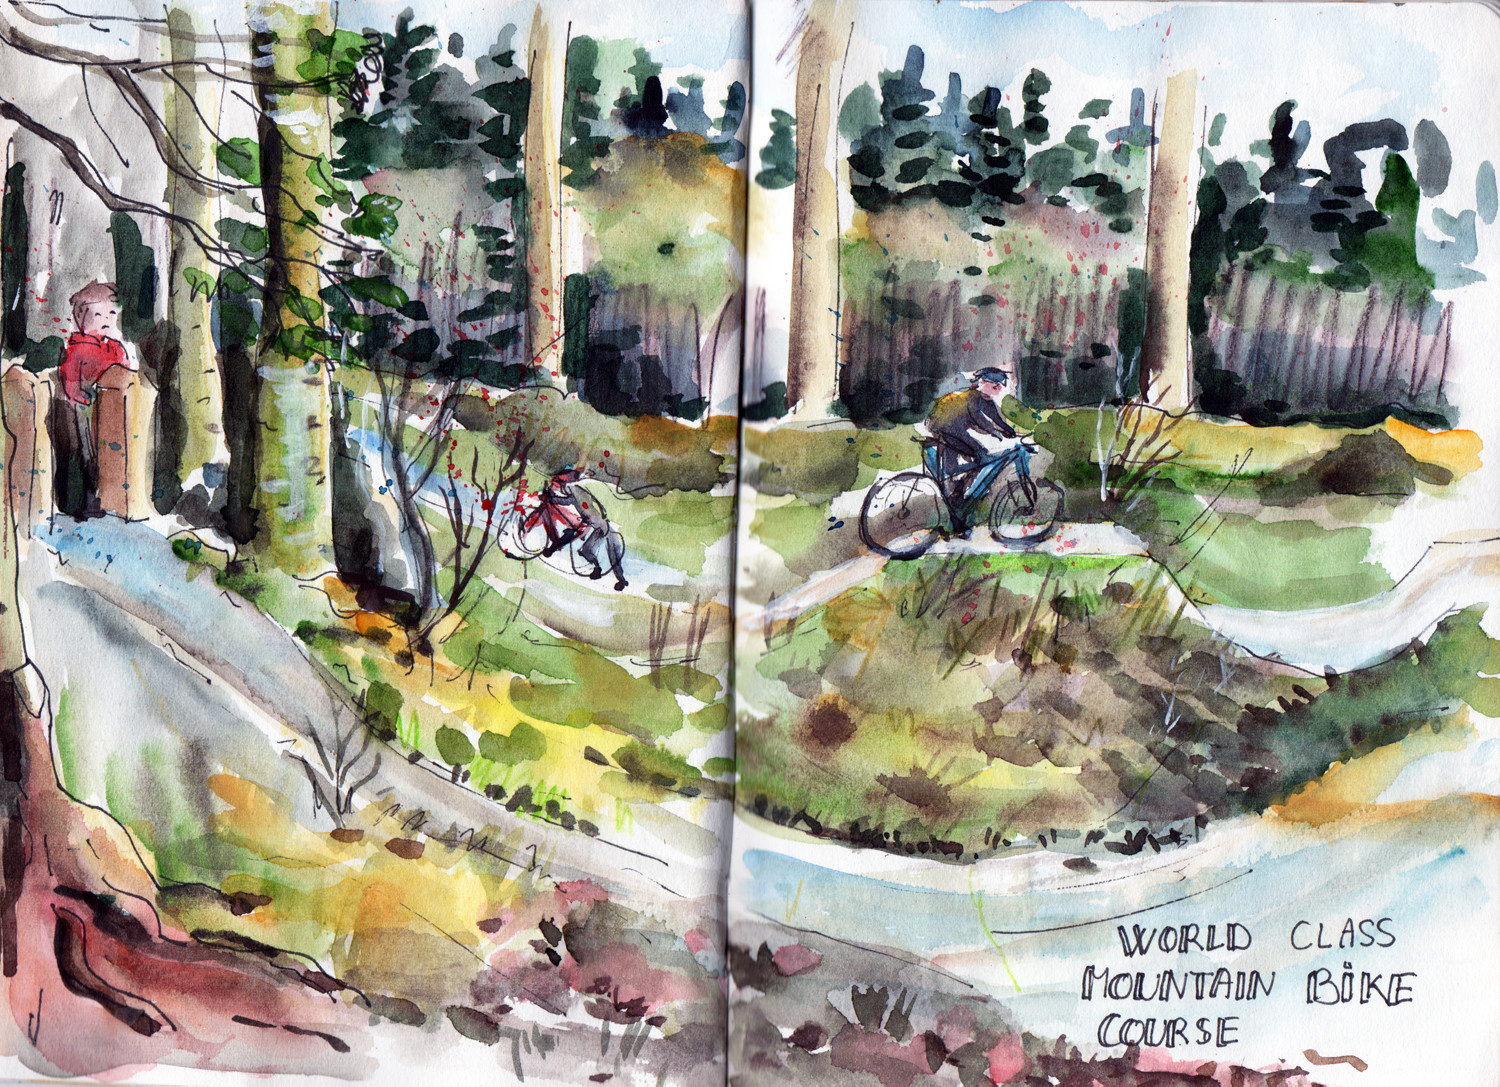 World class mountain bike course - Dalby Forest Pen and Watercolour drawing